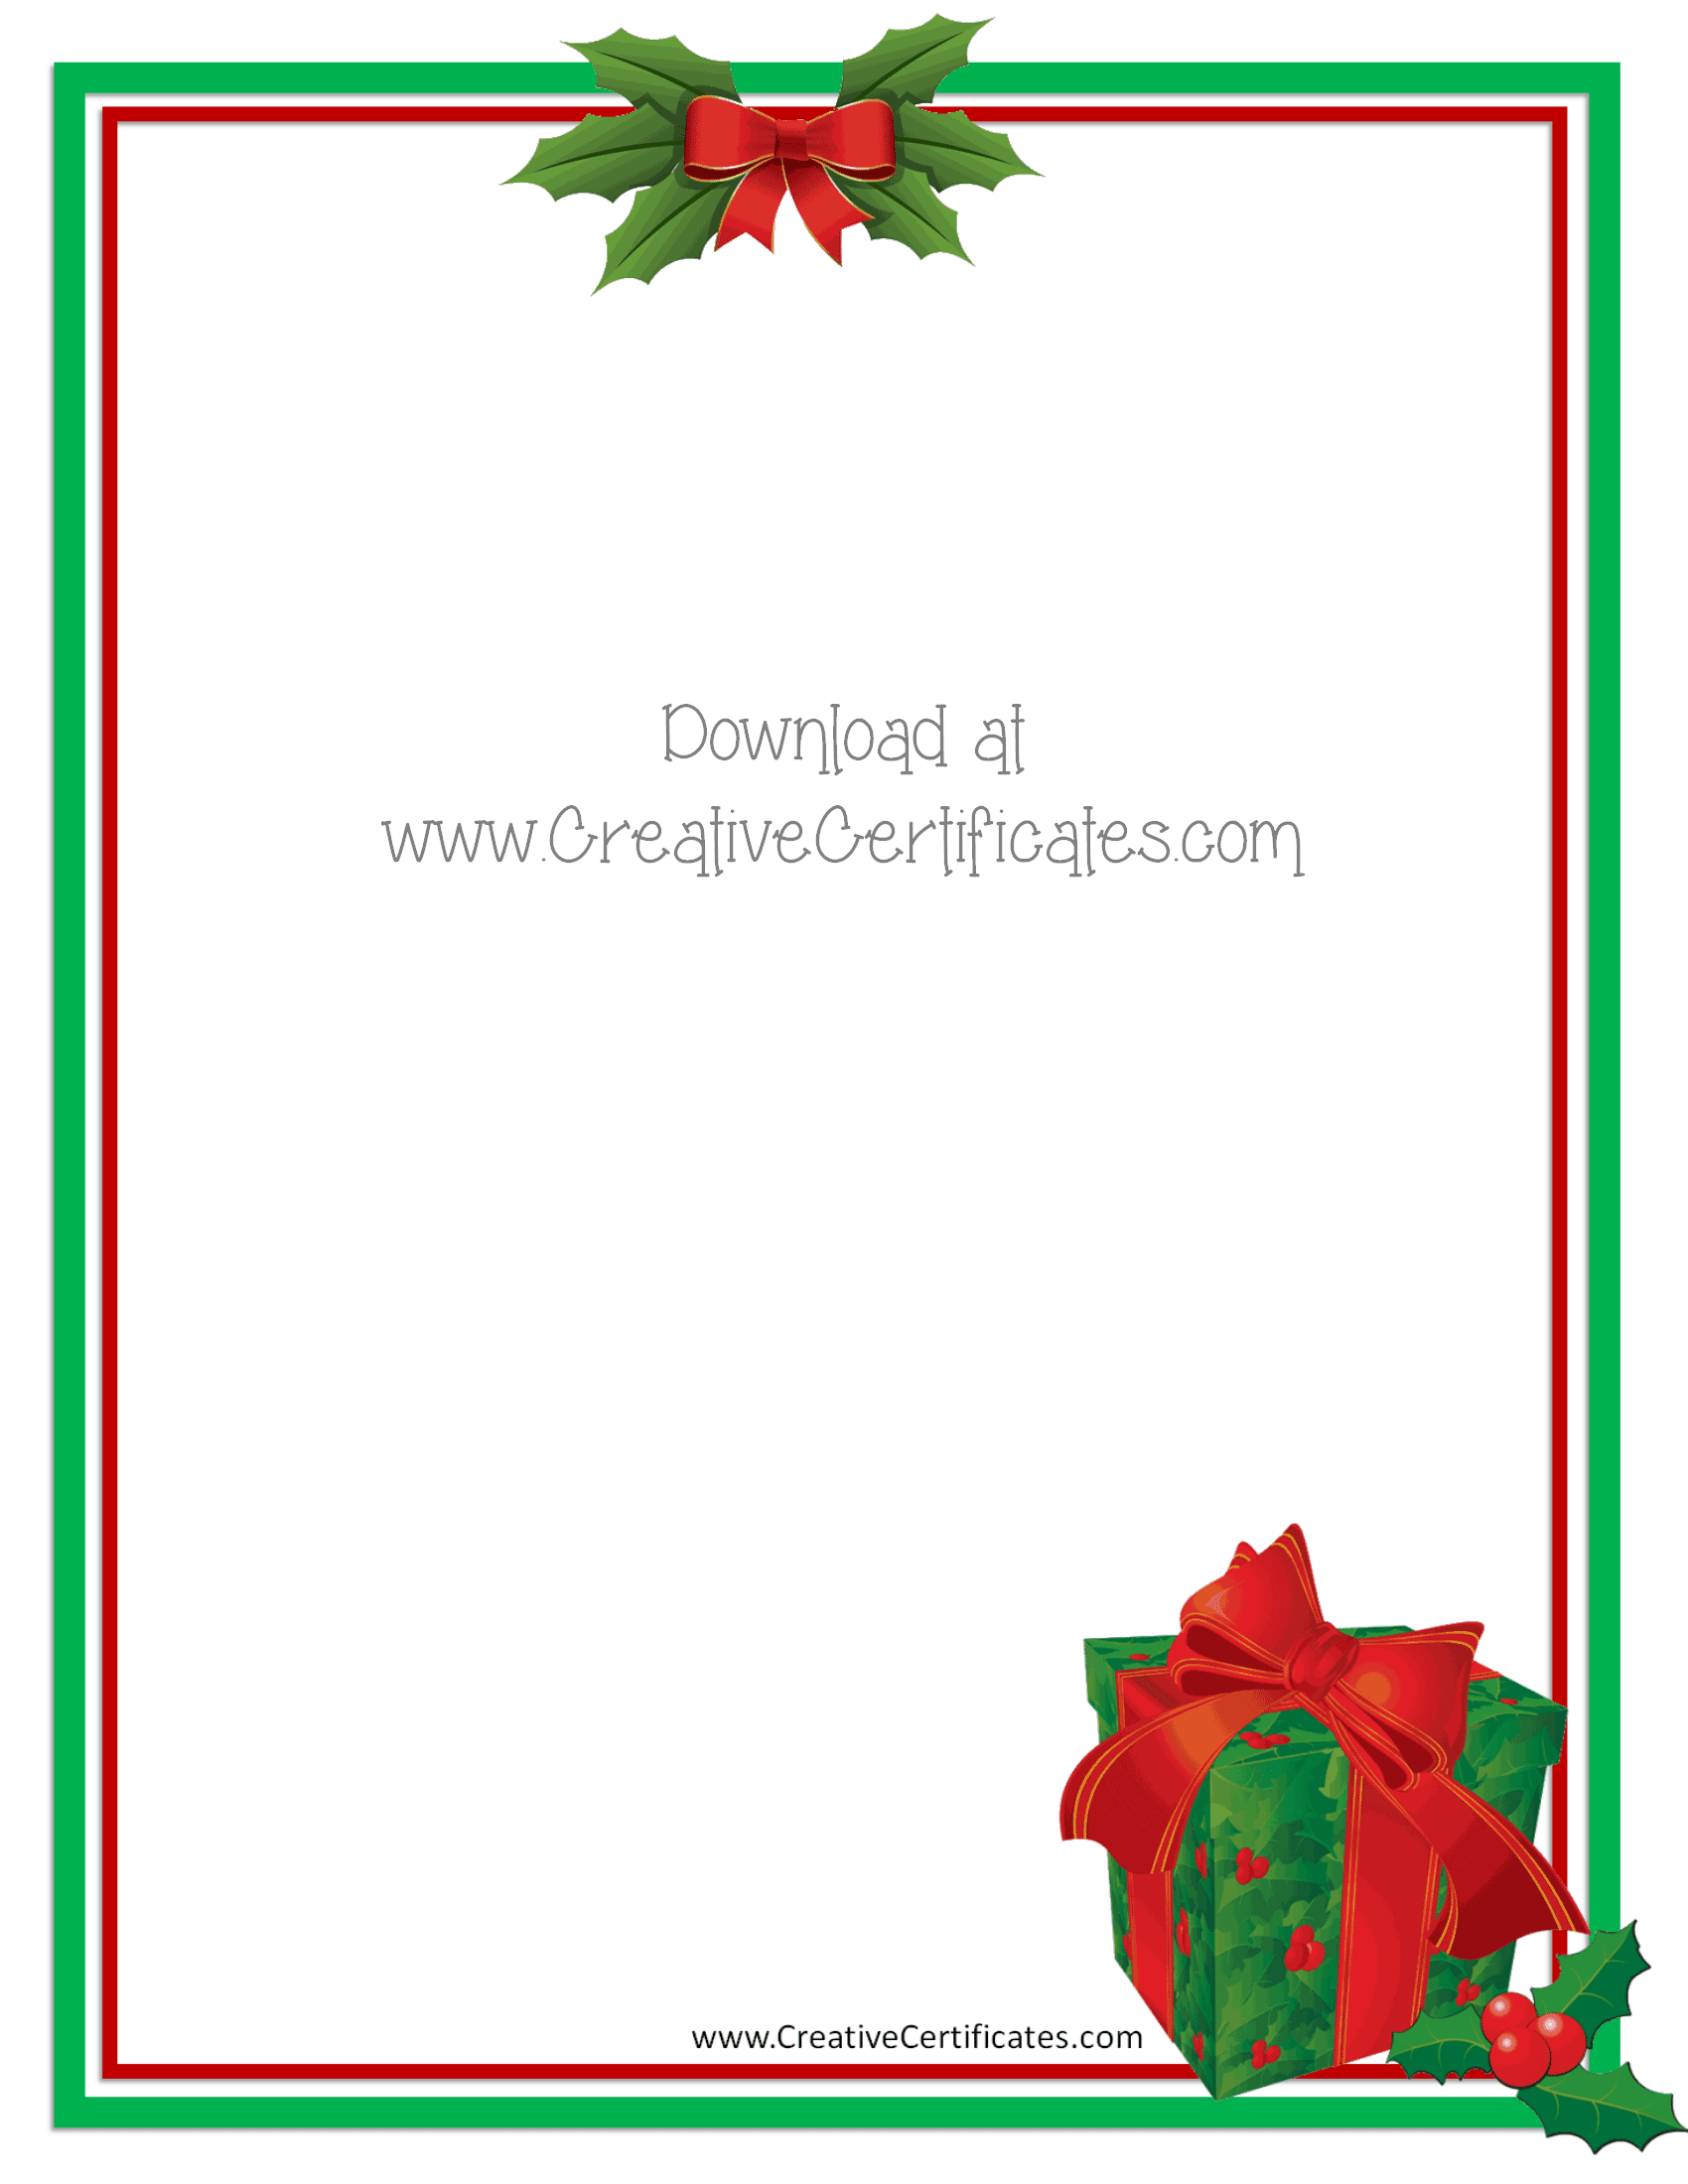 Free christmas border templates customize online then download green and red border with a clip art picture of a gift yelopaper